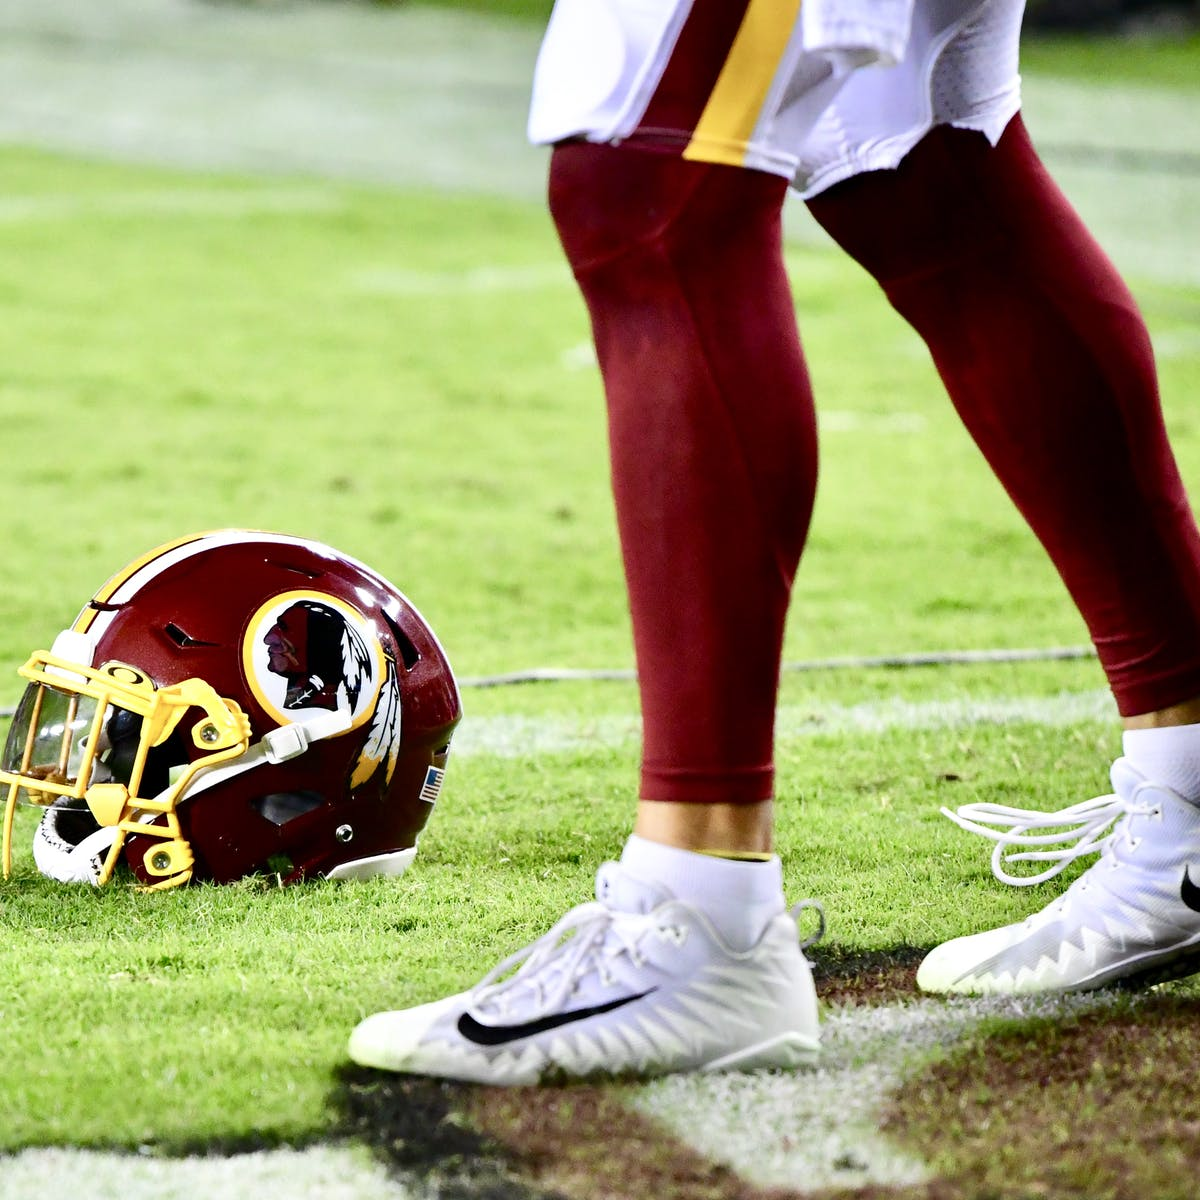 Washington Redskins Finally Agree Dismantling Racist Team Mascots Is Long Overdue